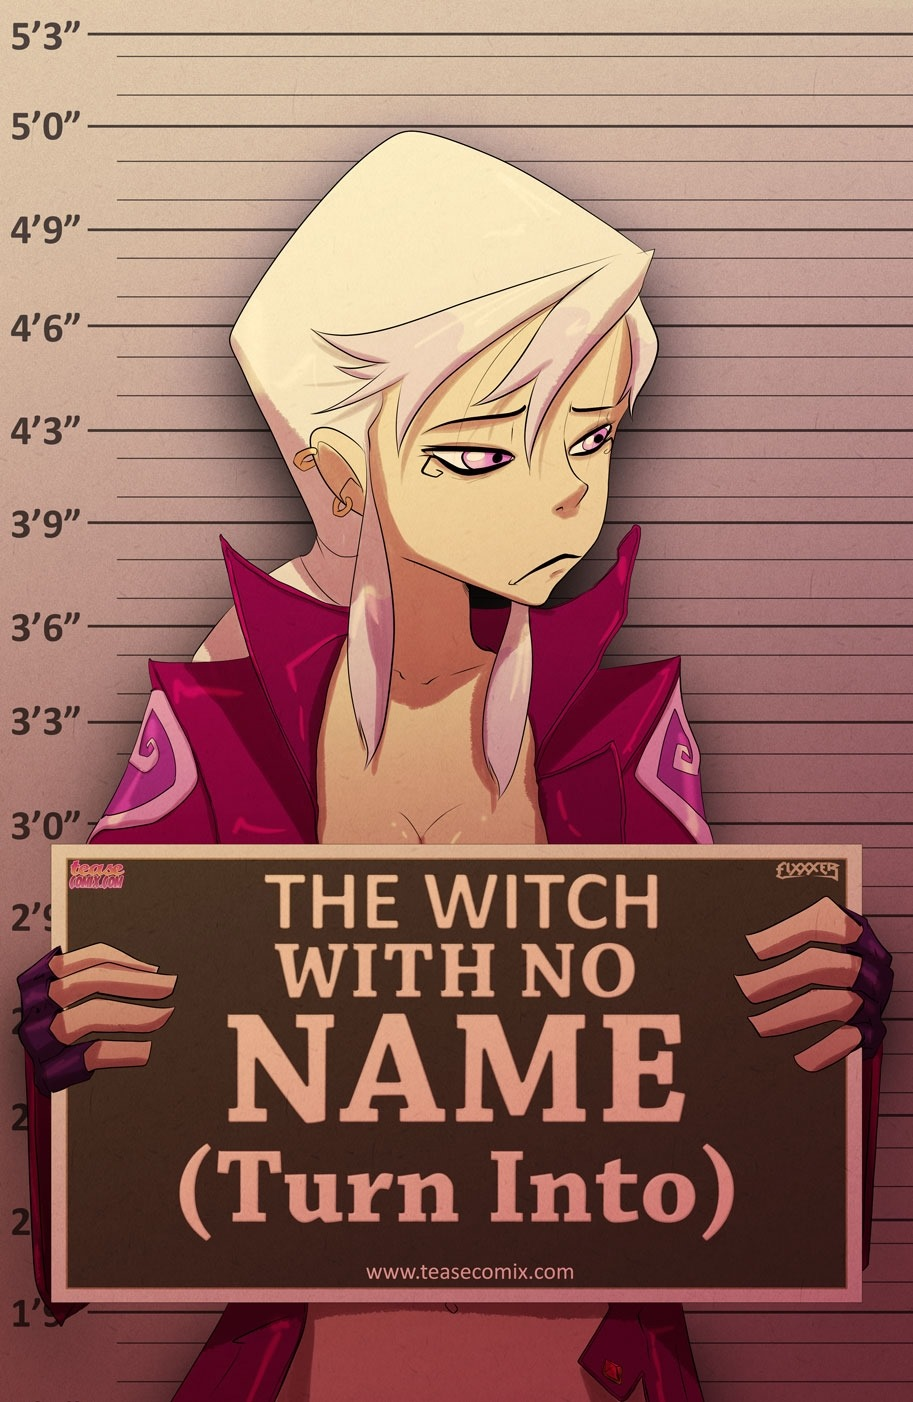 [Fixxxer] The Witch With no Name